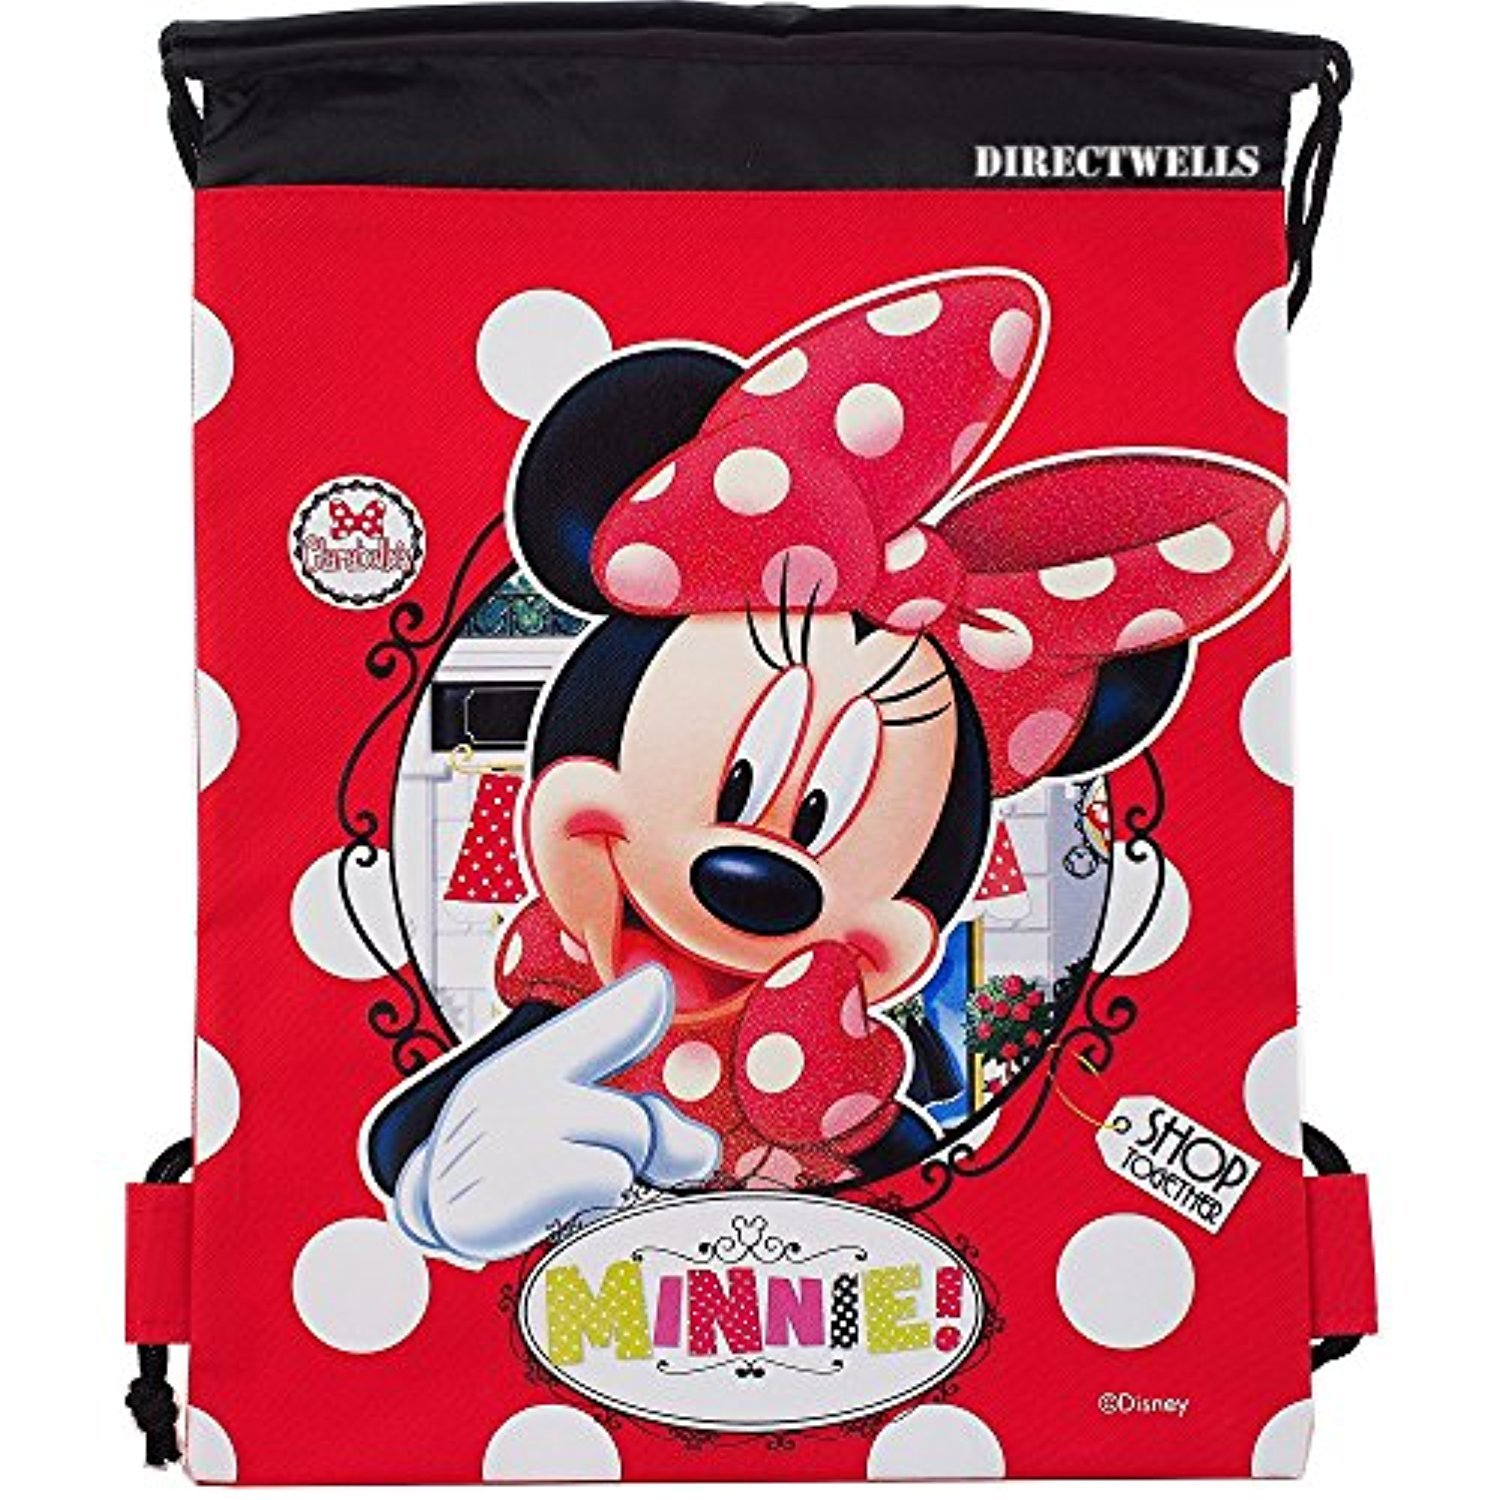 Disney Authentic Licensed Drawstring Backpack Image 1